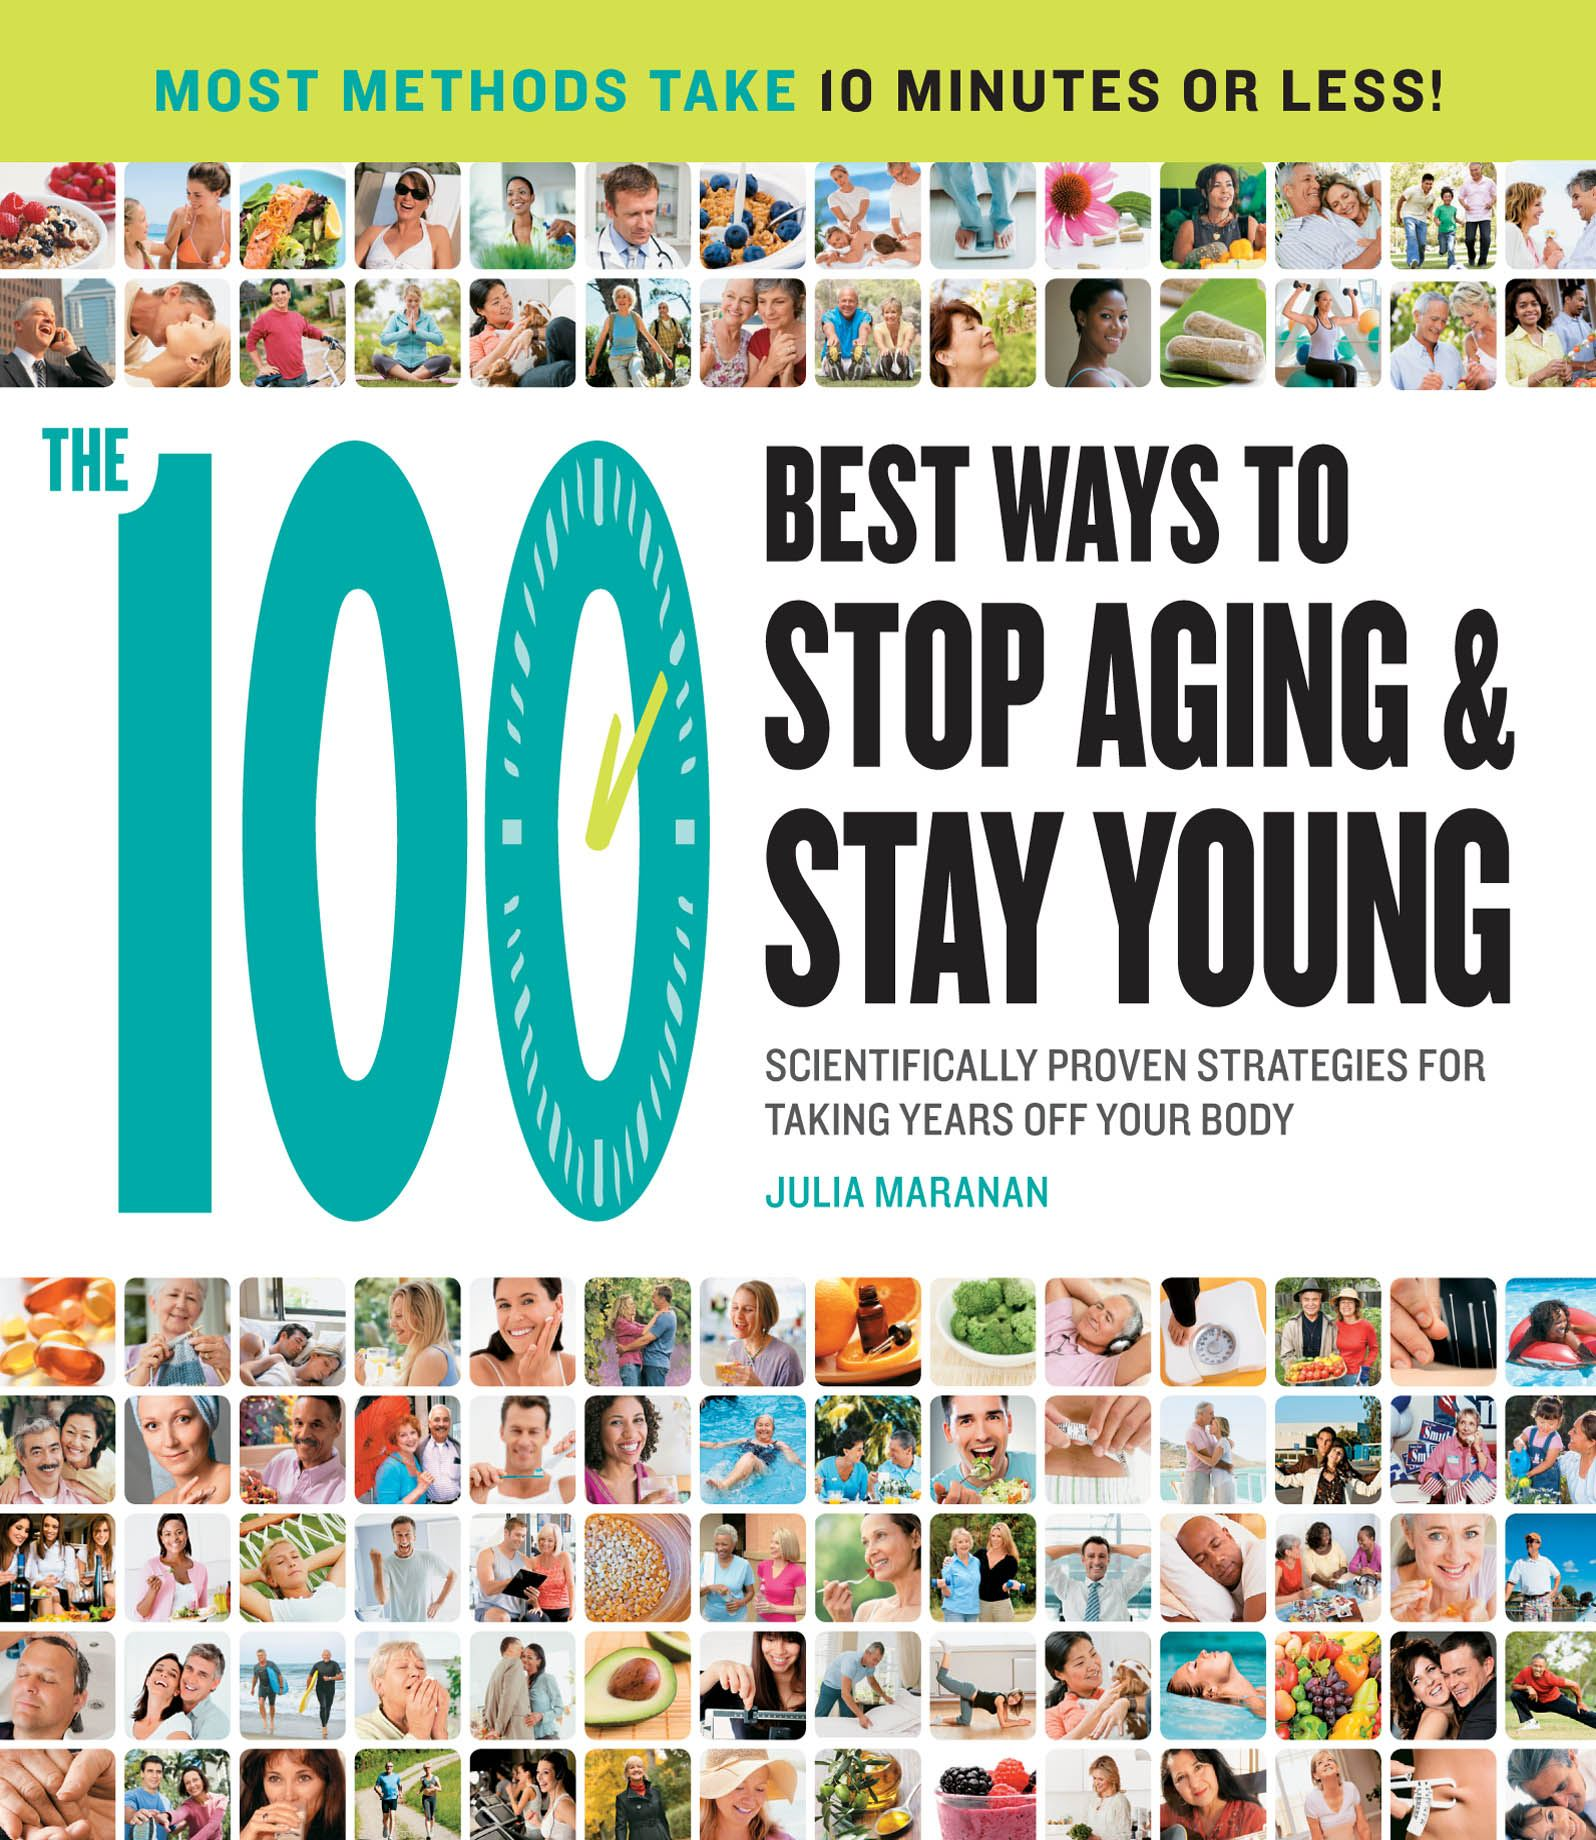 The 100 Best Ways to Stop Aging and Stay Young: Scientifically Proven Strategies for Taking Years Off Your Body By: Julia Maranan